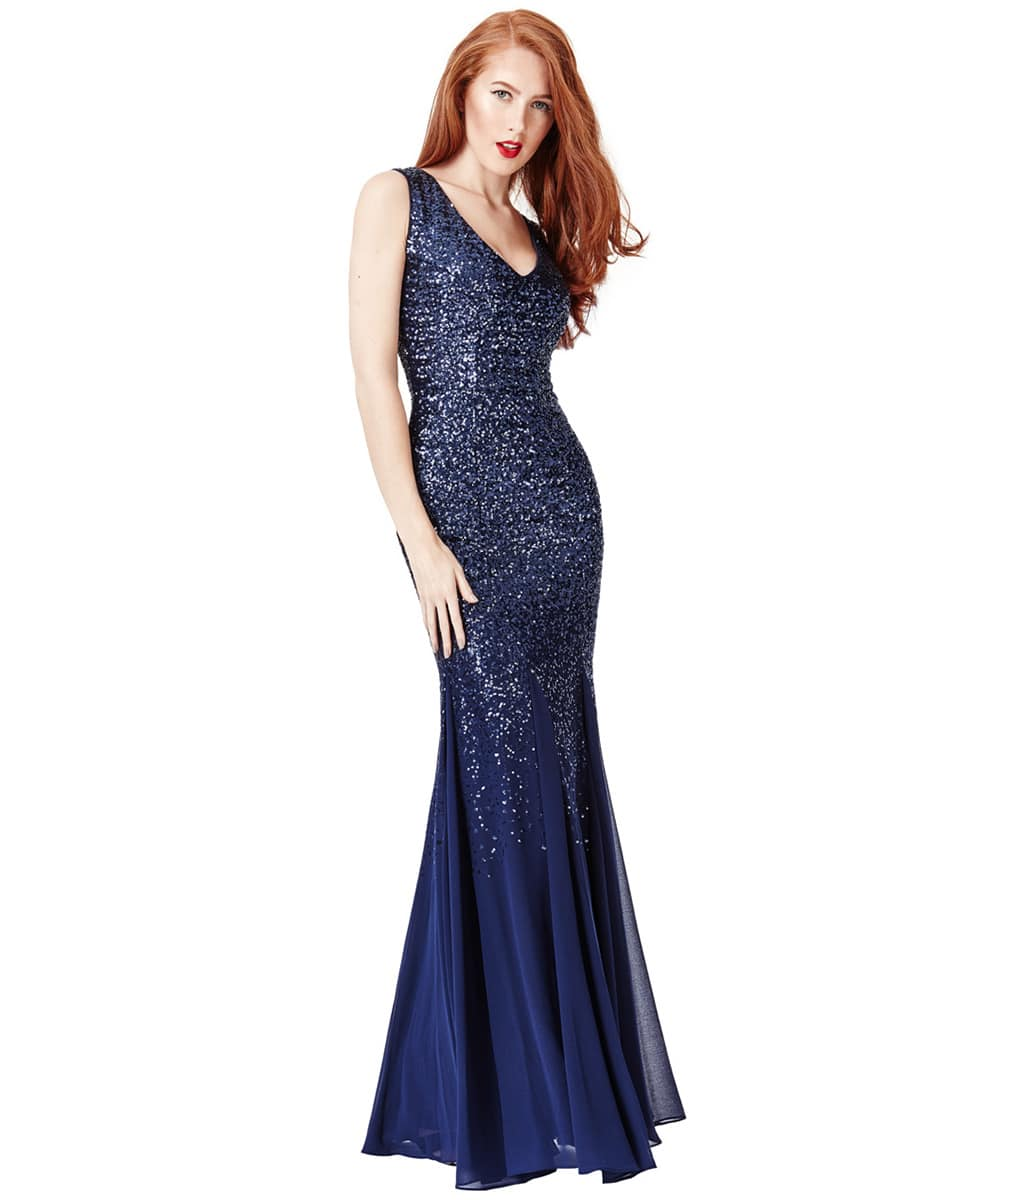 ALILA-Navy-Sequin-v-neck-chiffon-end-debs-dress